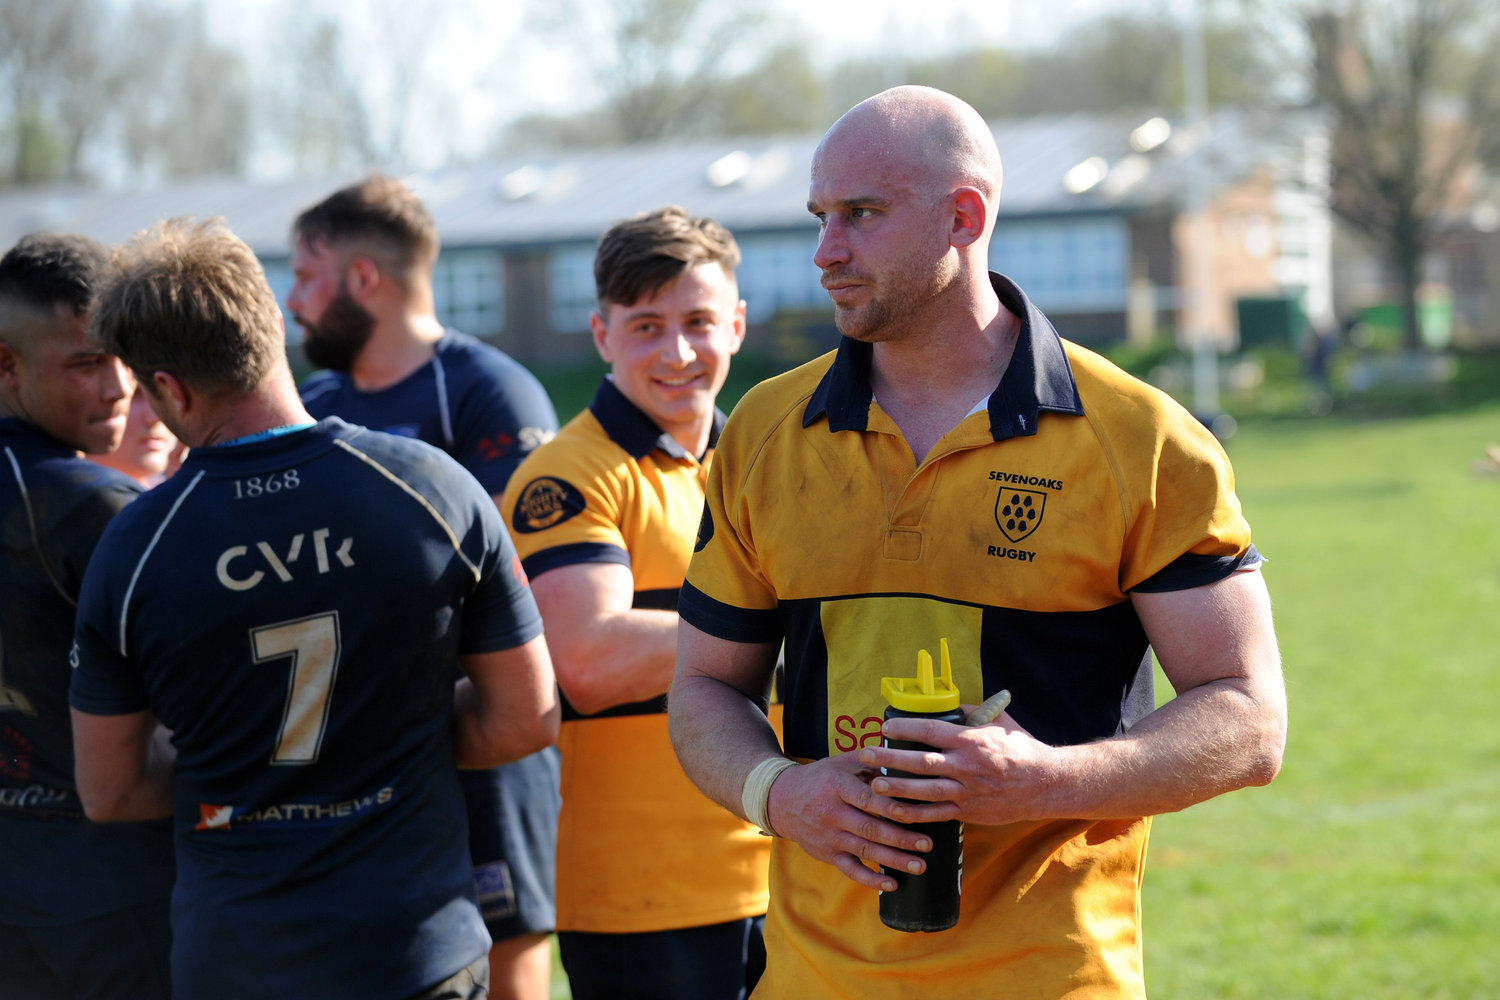 Leader of the Pack. Stuart Coleman will once again captain the 1st XV this year. Photo Credit: David Purday